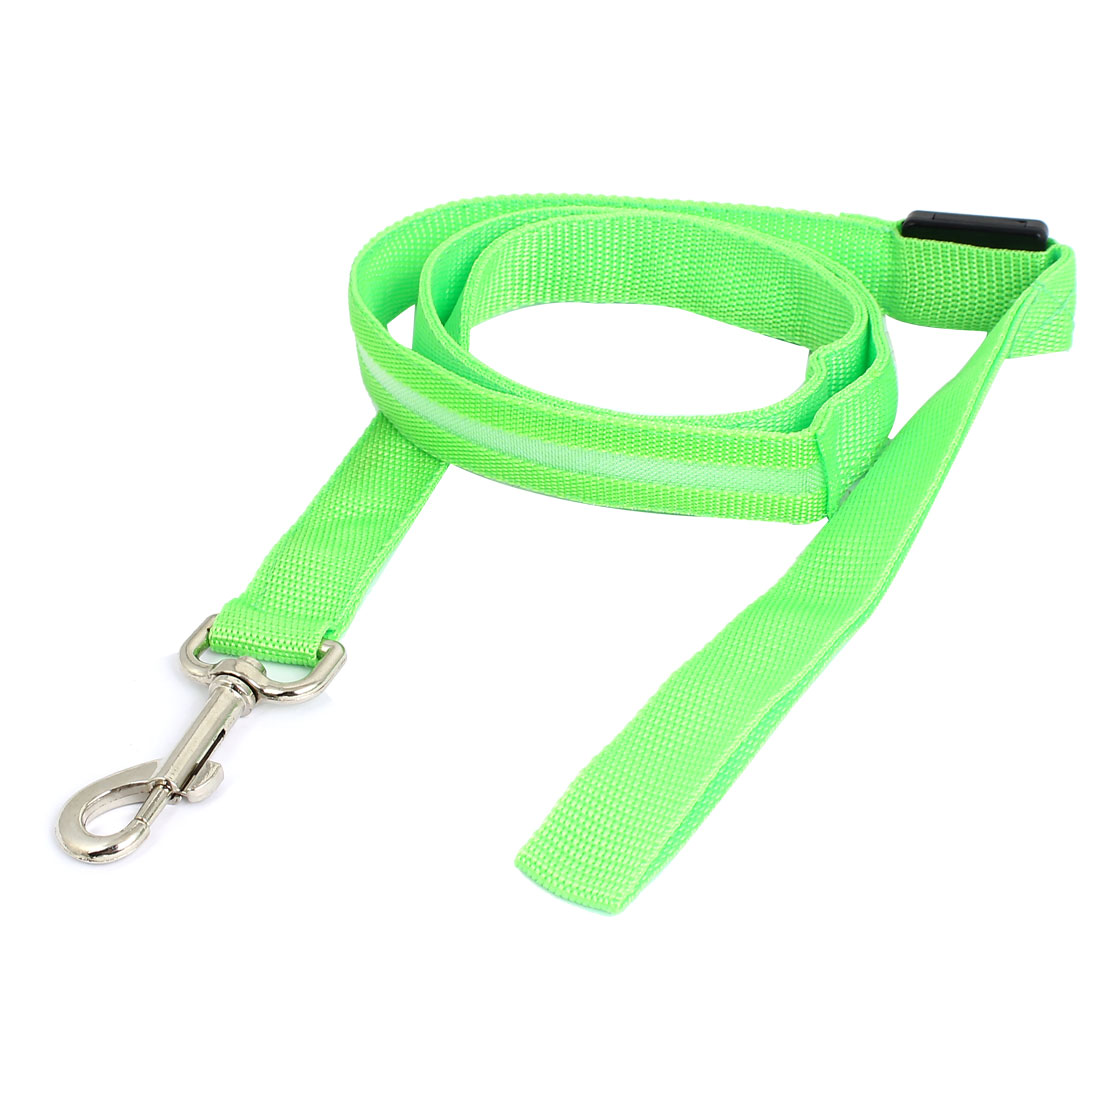 Green Puppy Dog Pet Safety LED Flash Light Leash Rope Strap 120cm Long w Trigger Hook